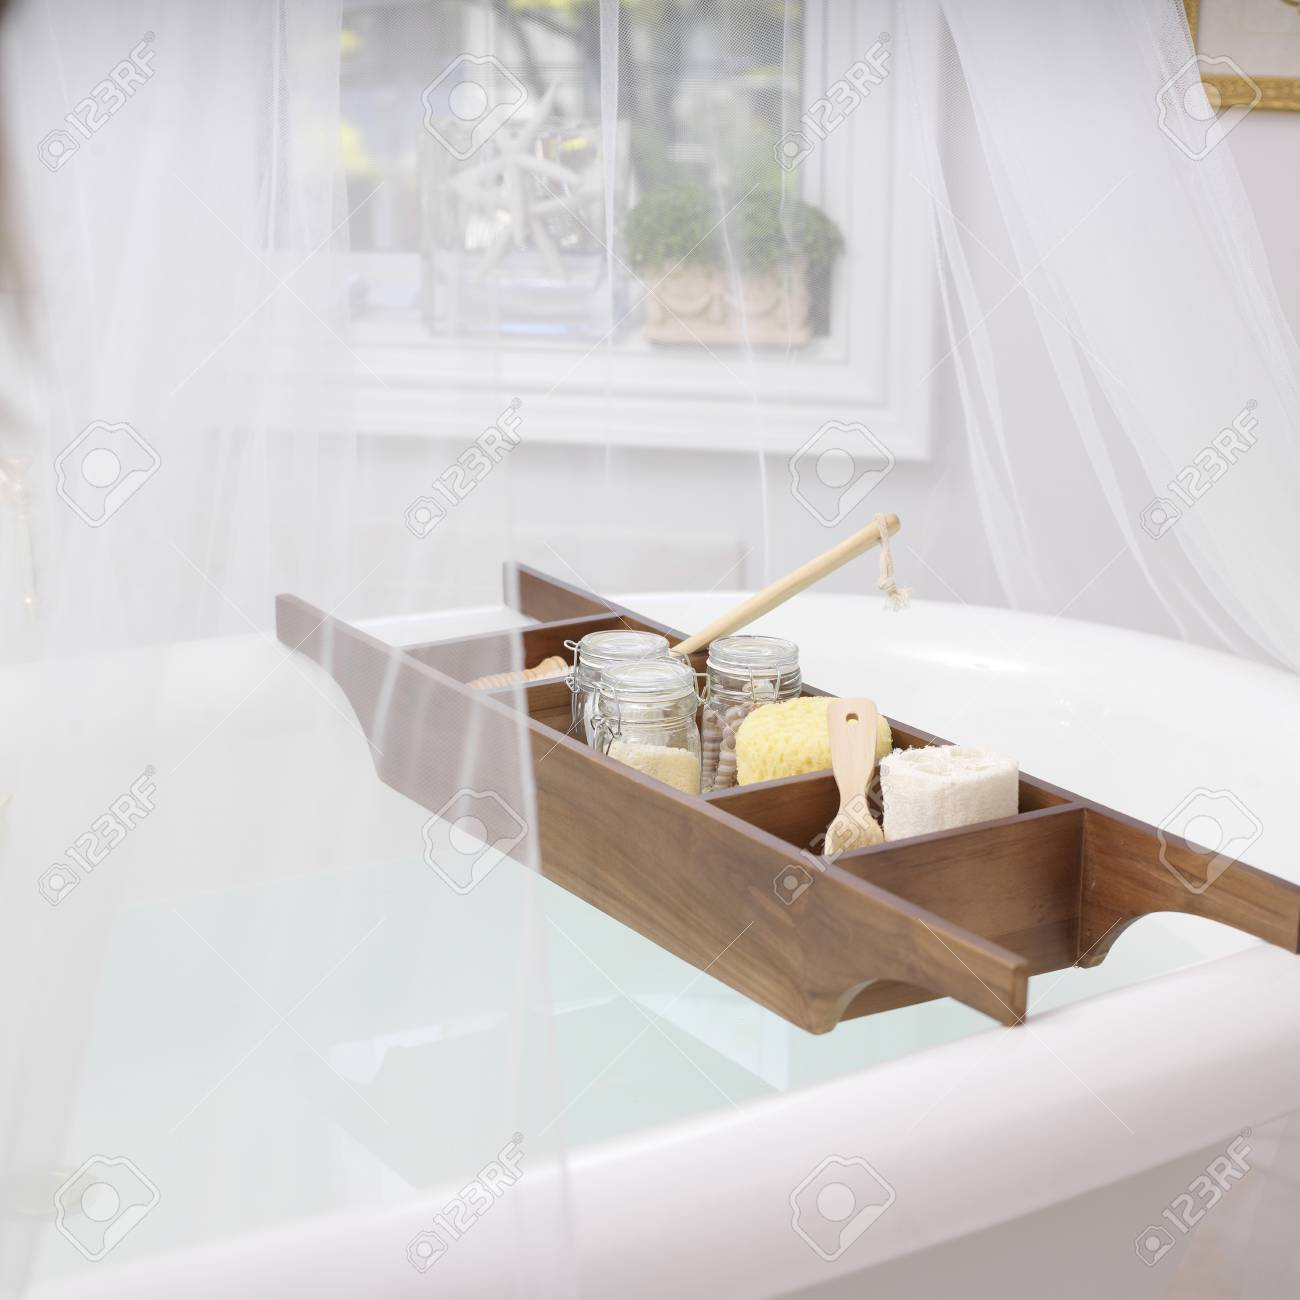 Bath Caddy On Bathtub Filled With Bath Items Stock Photo, Picture ...